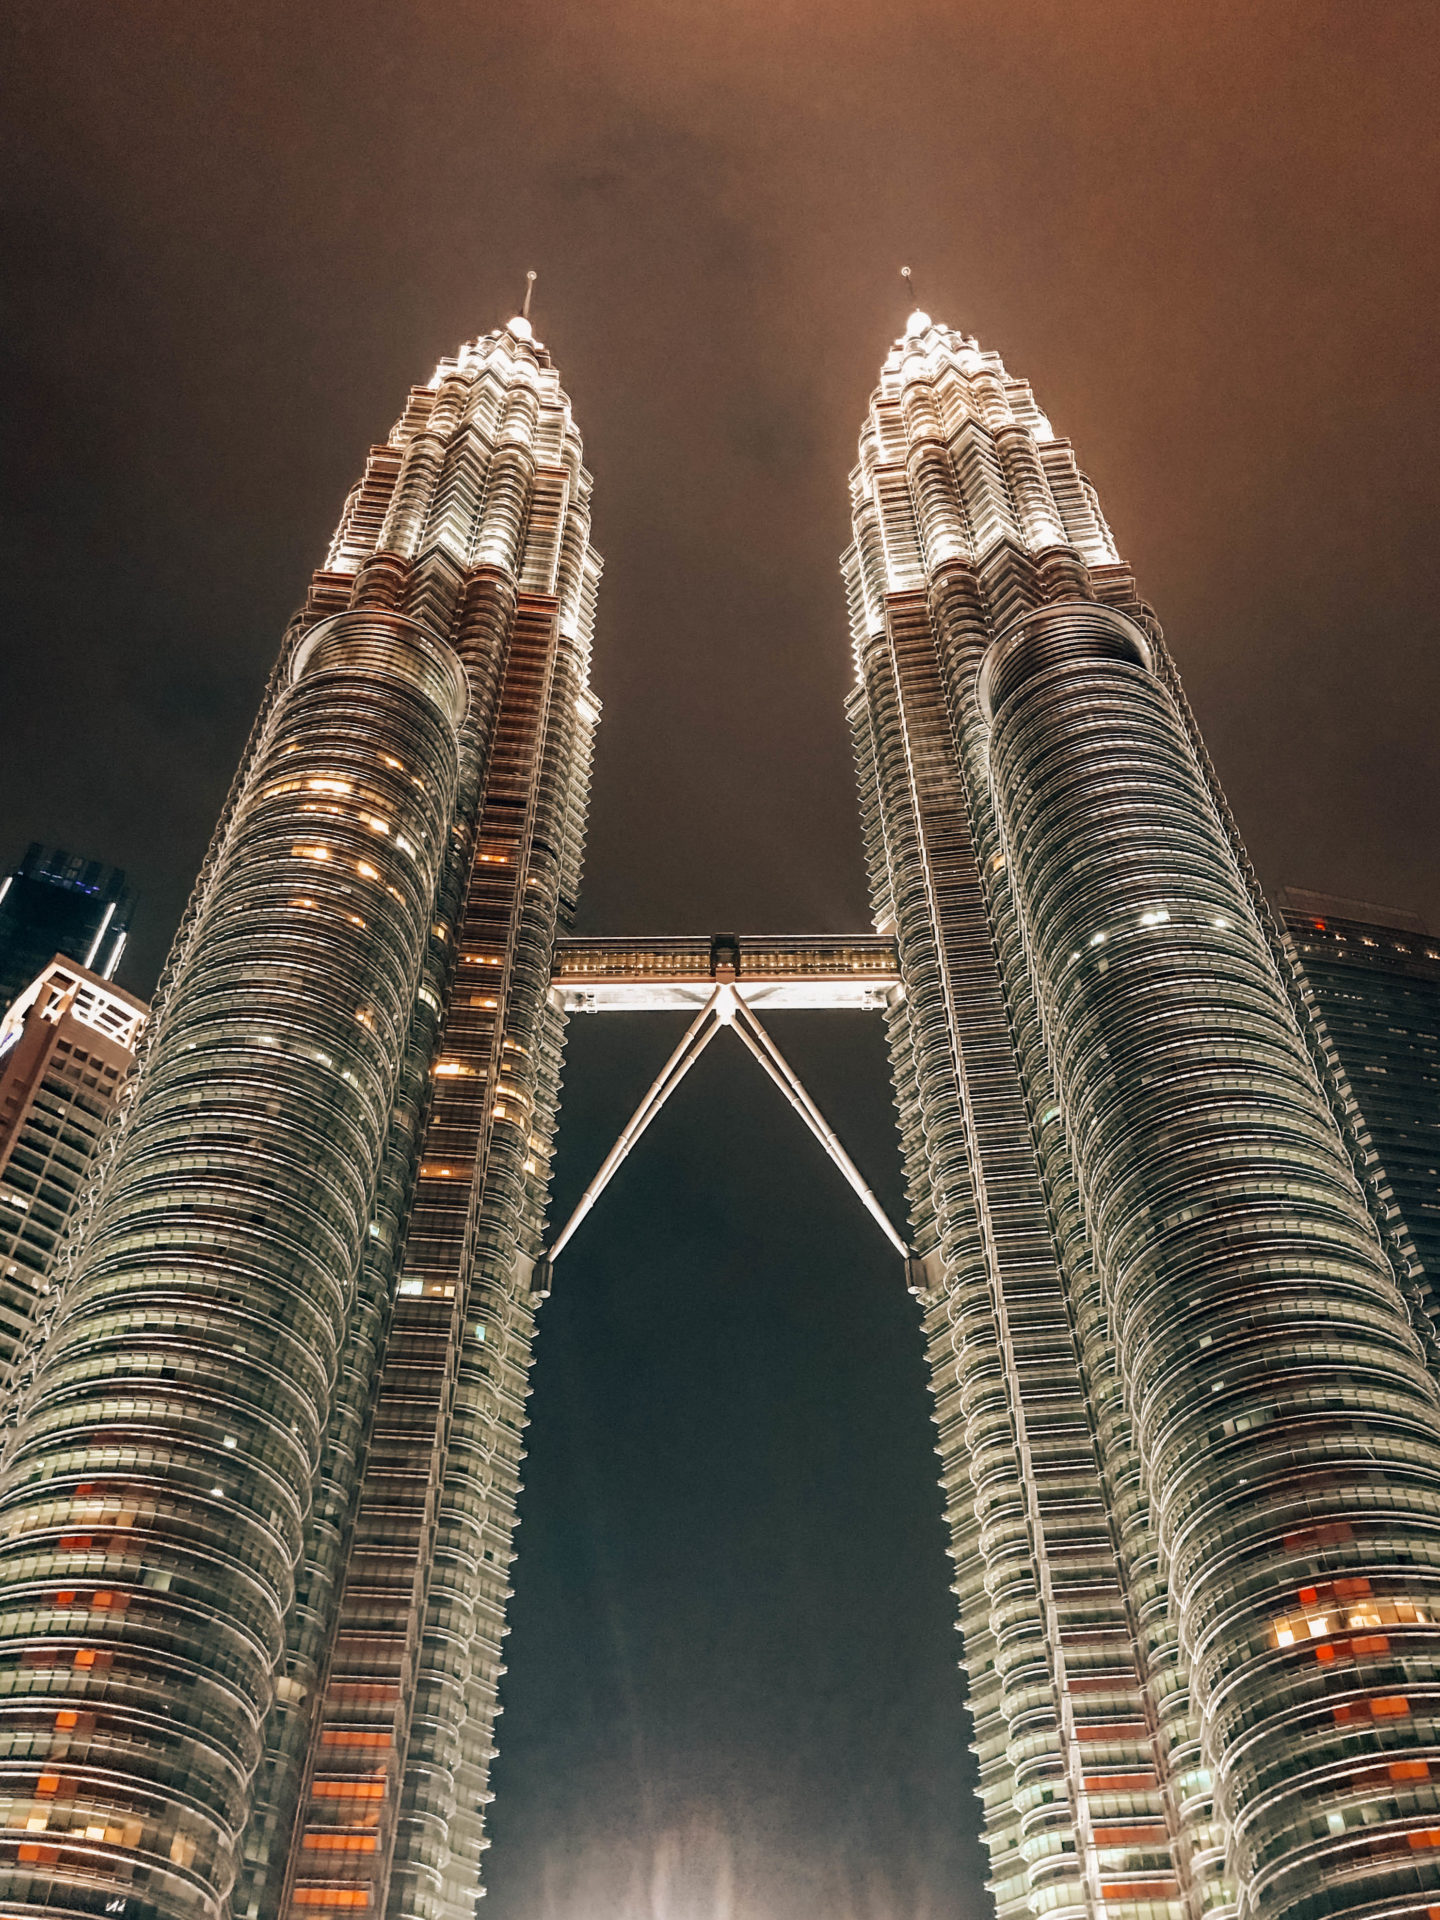 The twin towers by night in Kuala Lumpur